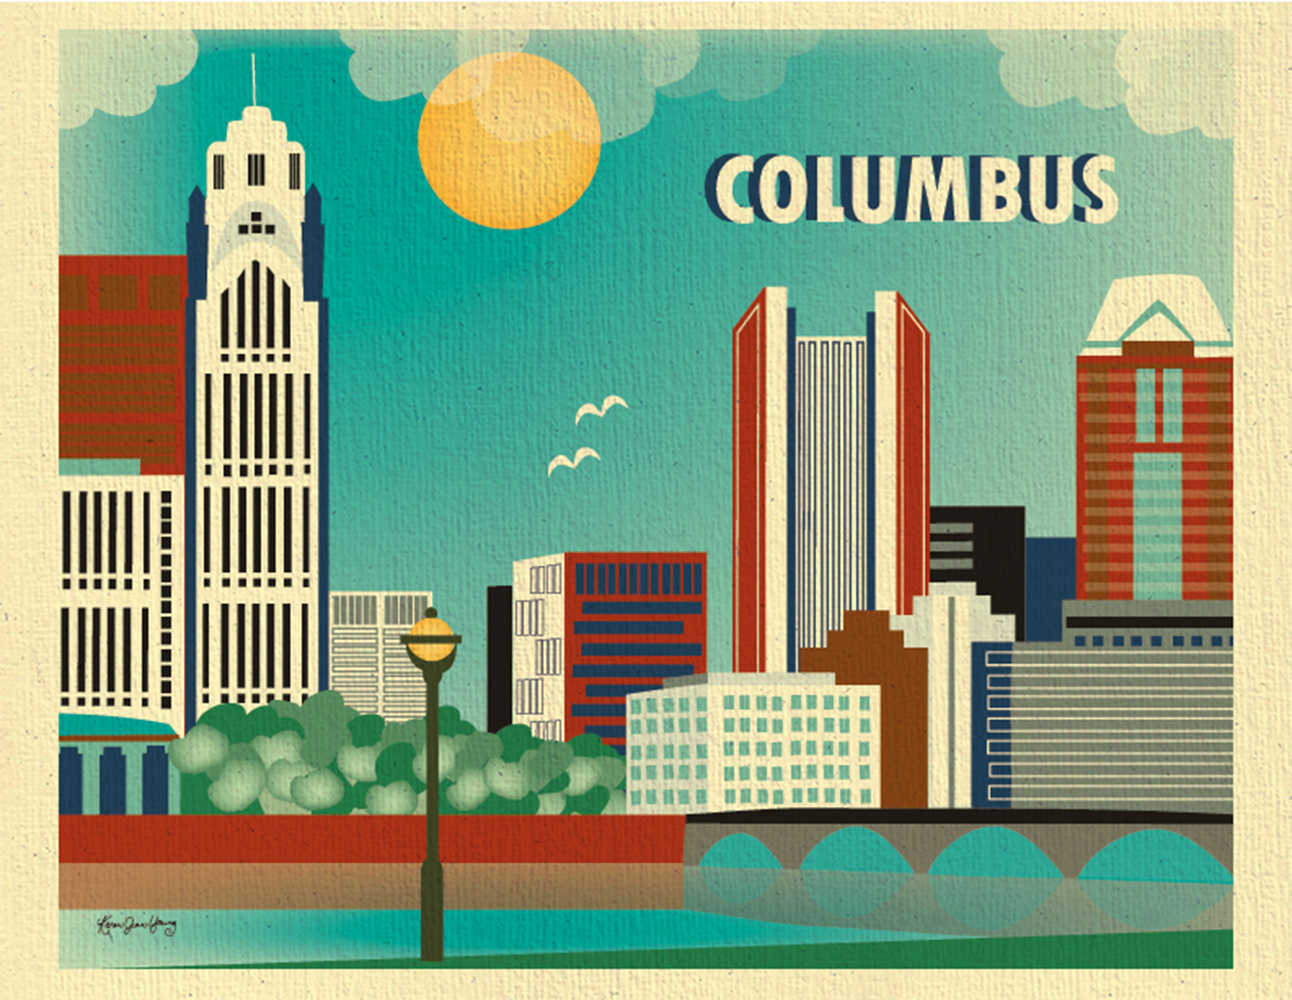 Columbus ohio skyline destination travel art poster print for home office and nursery rooms - Home decor stores in columbus ohio style ...